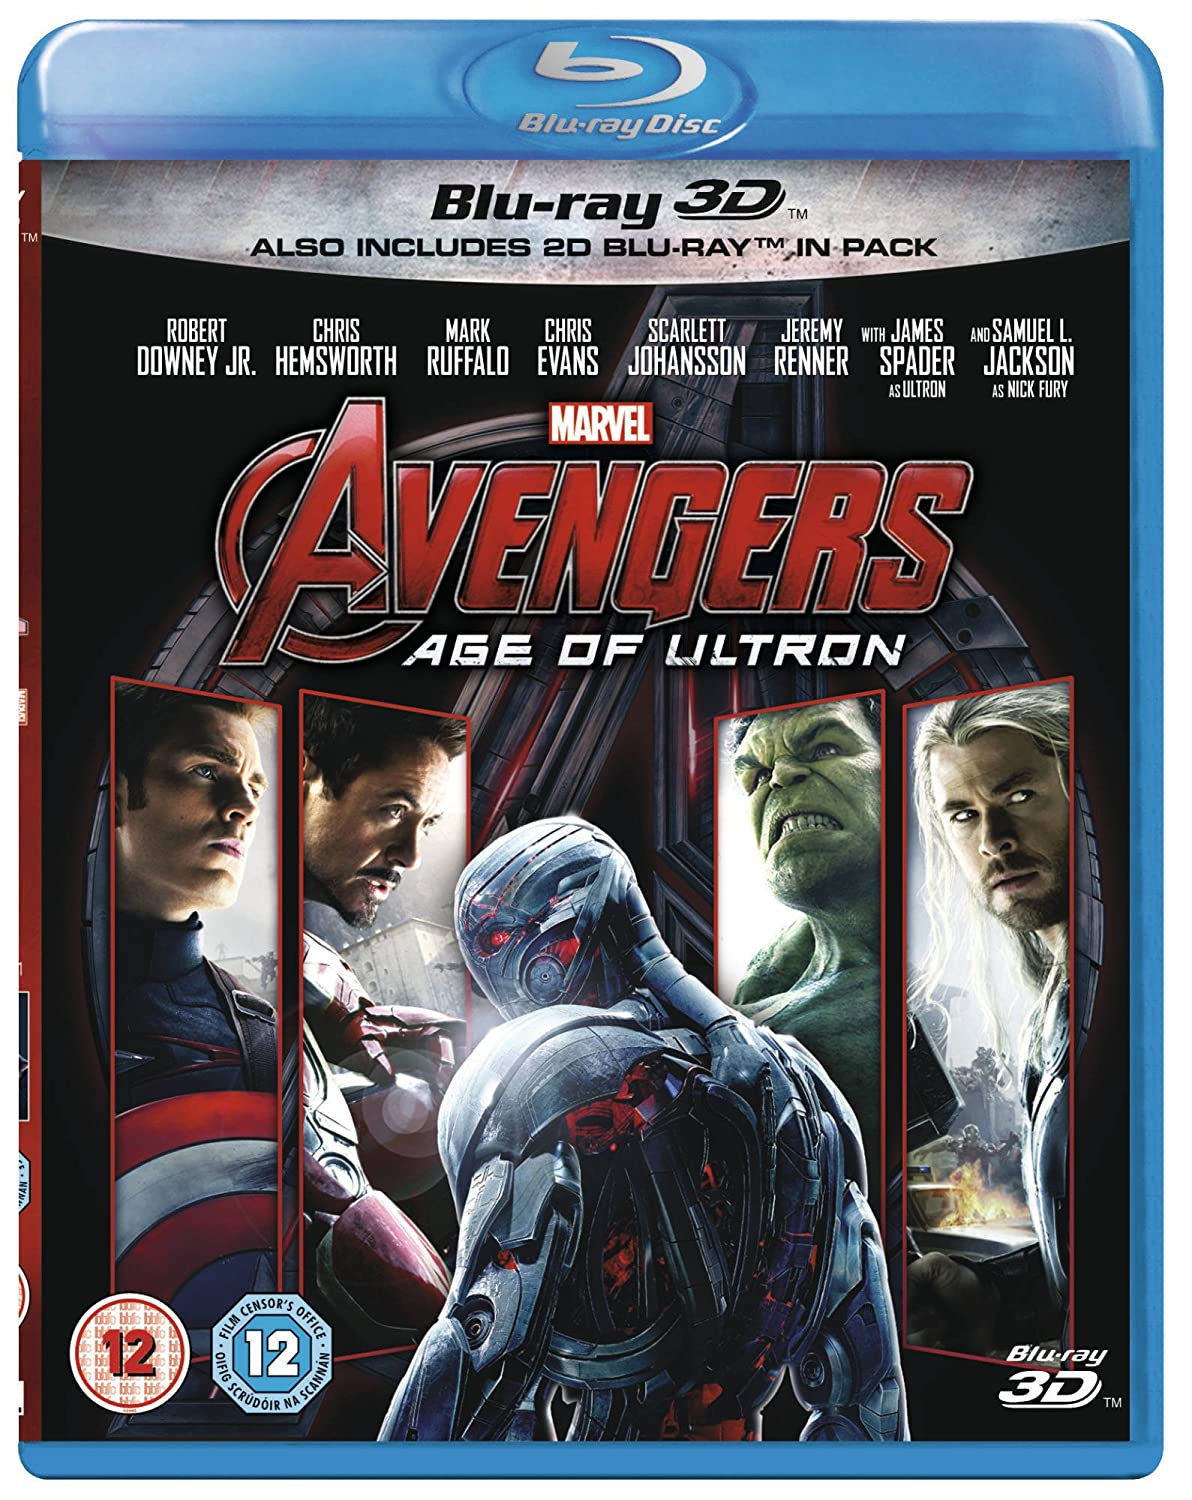 Avengers: Age of Ultron (3D) [Blu-ray]: Amazon.es: Robert Downey ...